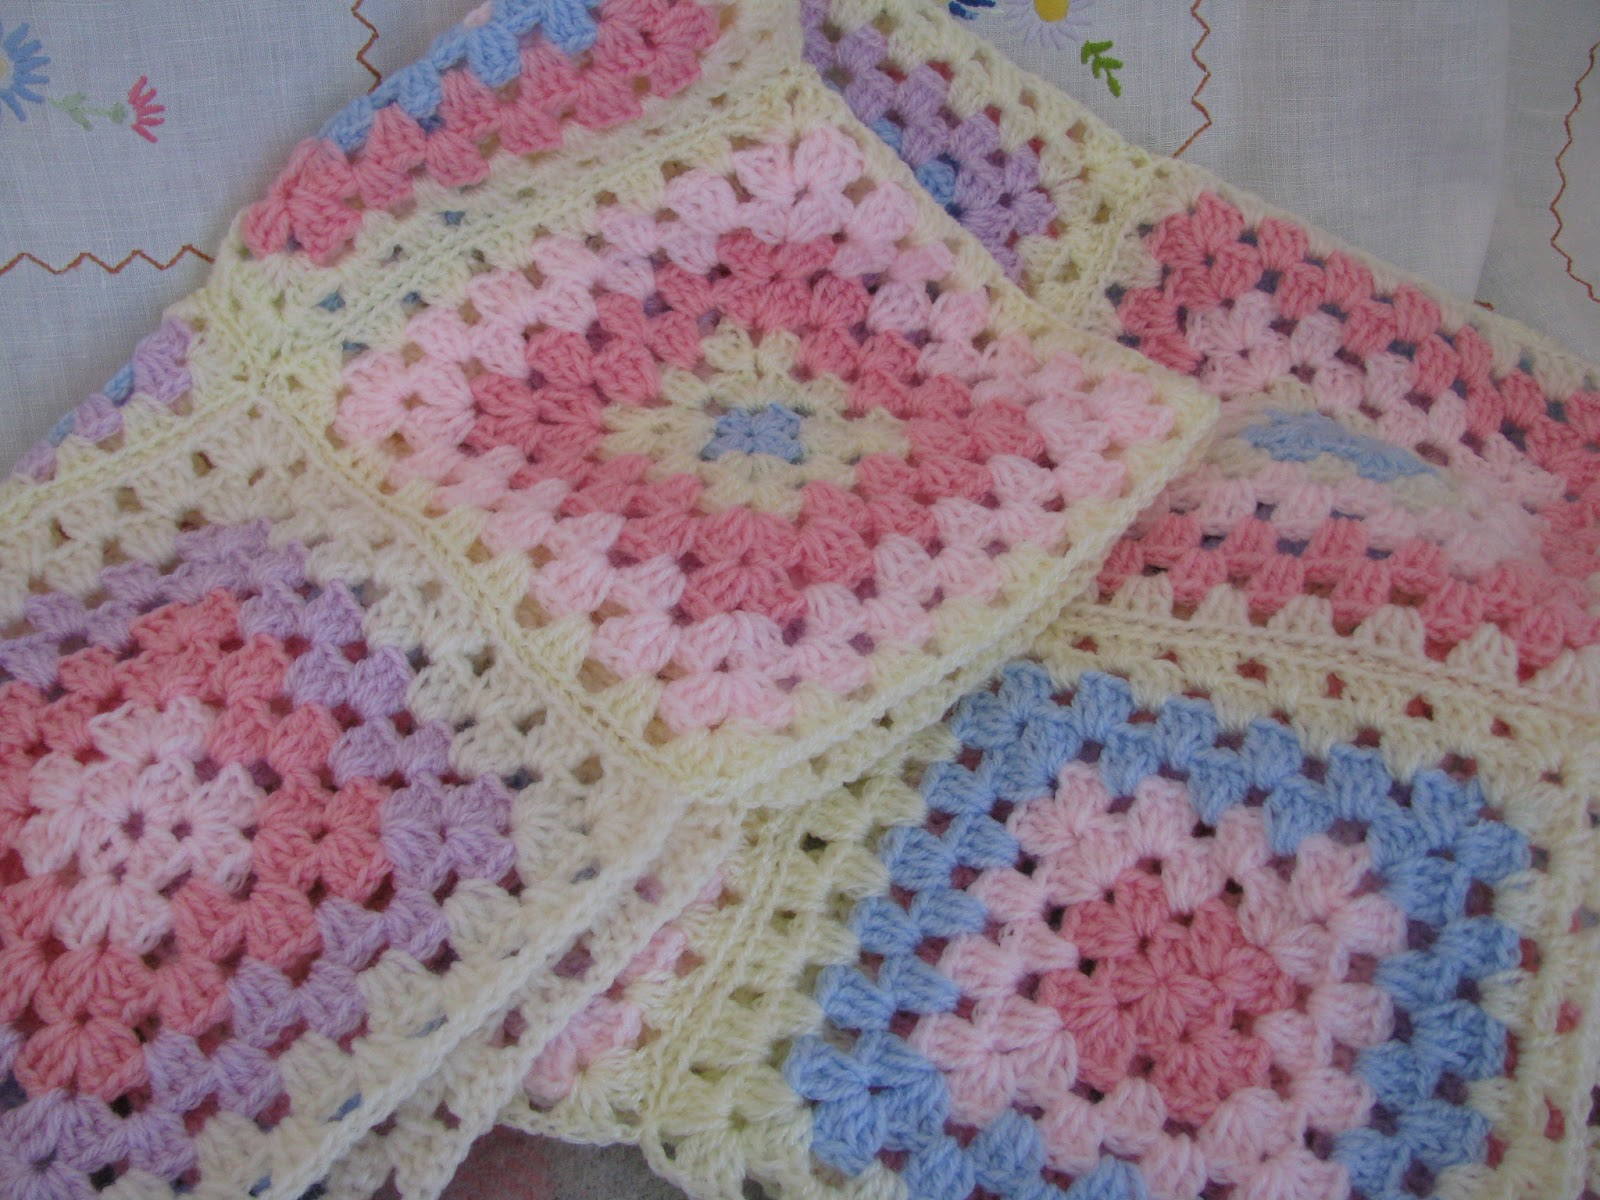 Crocheting A Baby Blanket For Beginners : Beginners Crochet Baby Crochet Blanket For Beginners